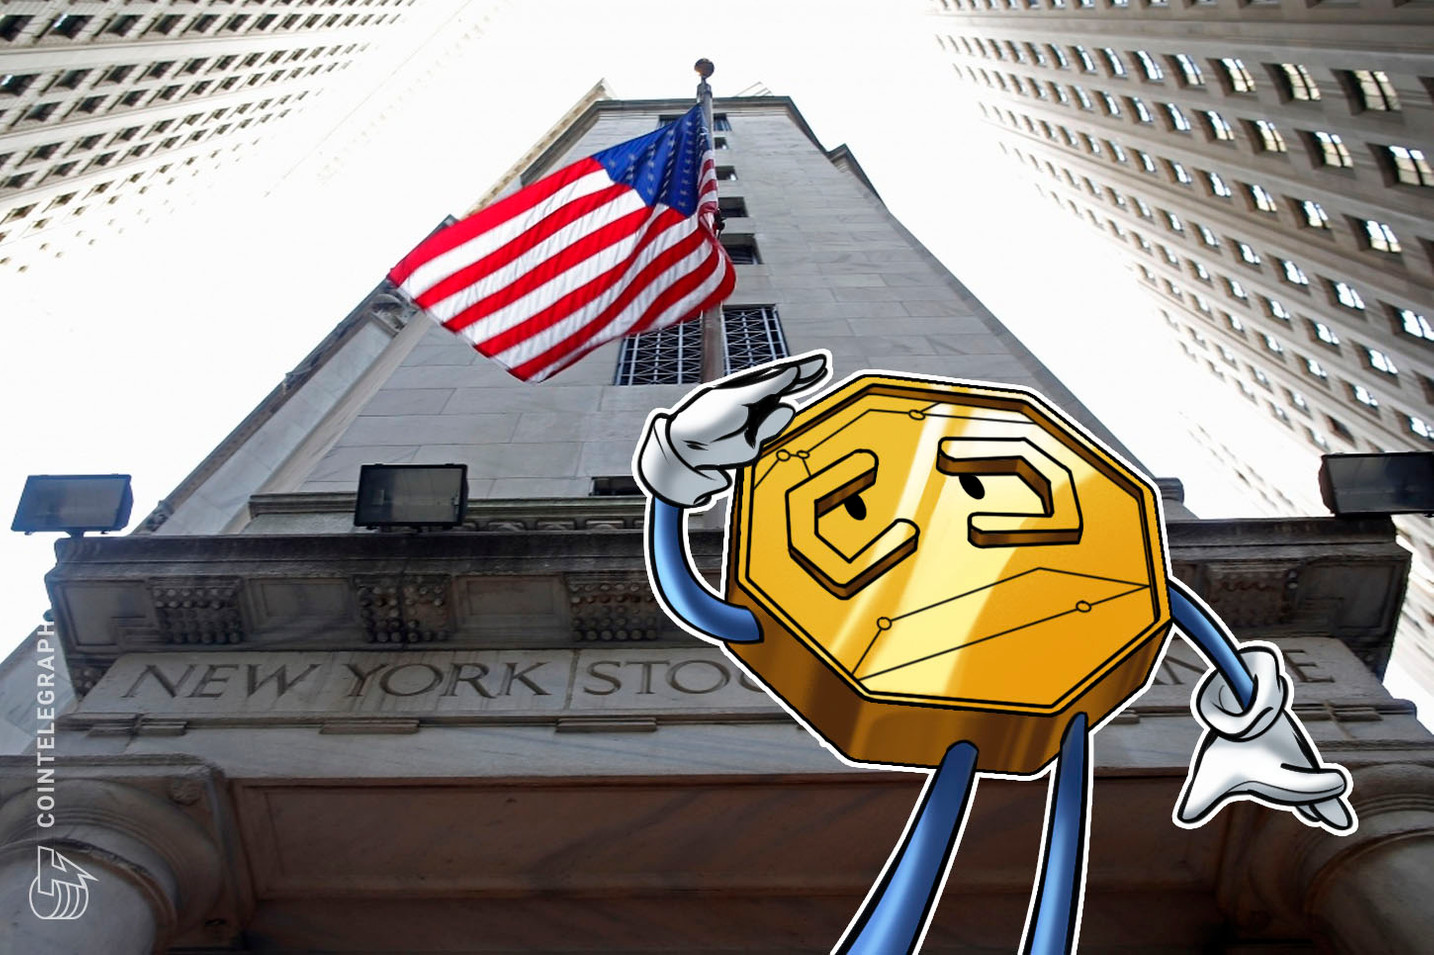 Intercontinental Exchange espanderà il suo tool Cryptocurrency Data Feed